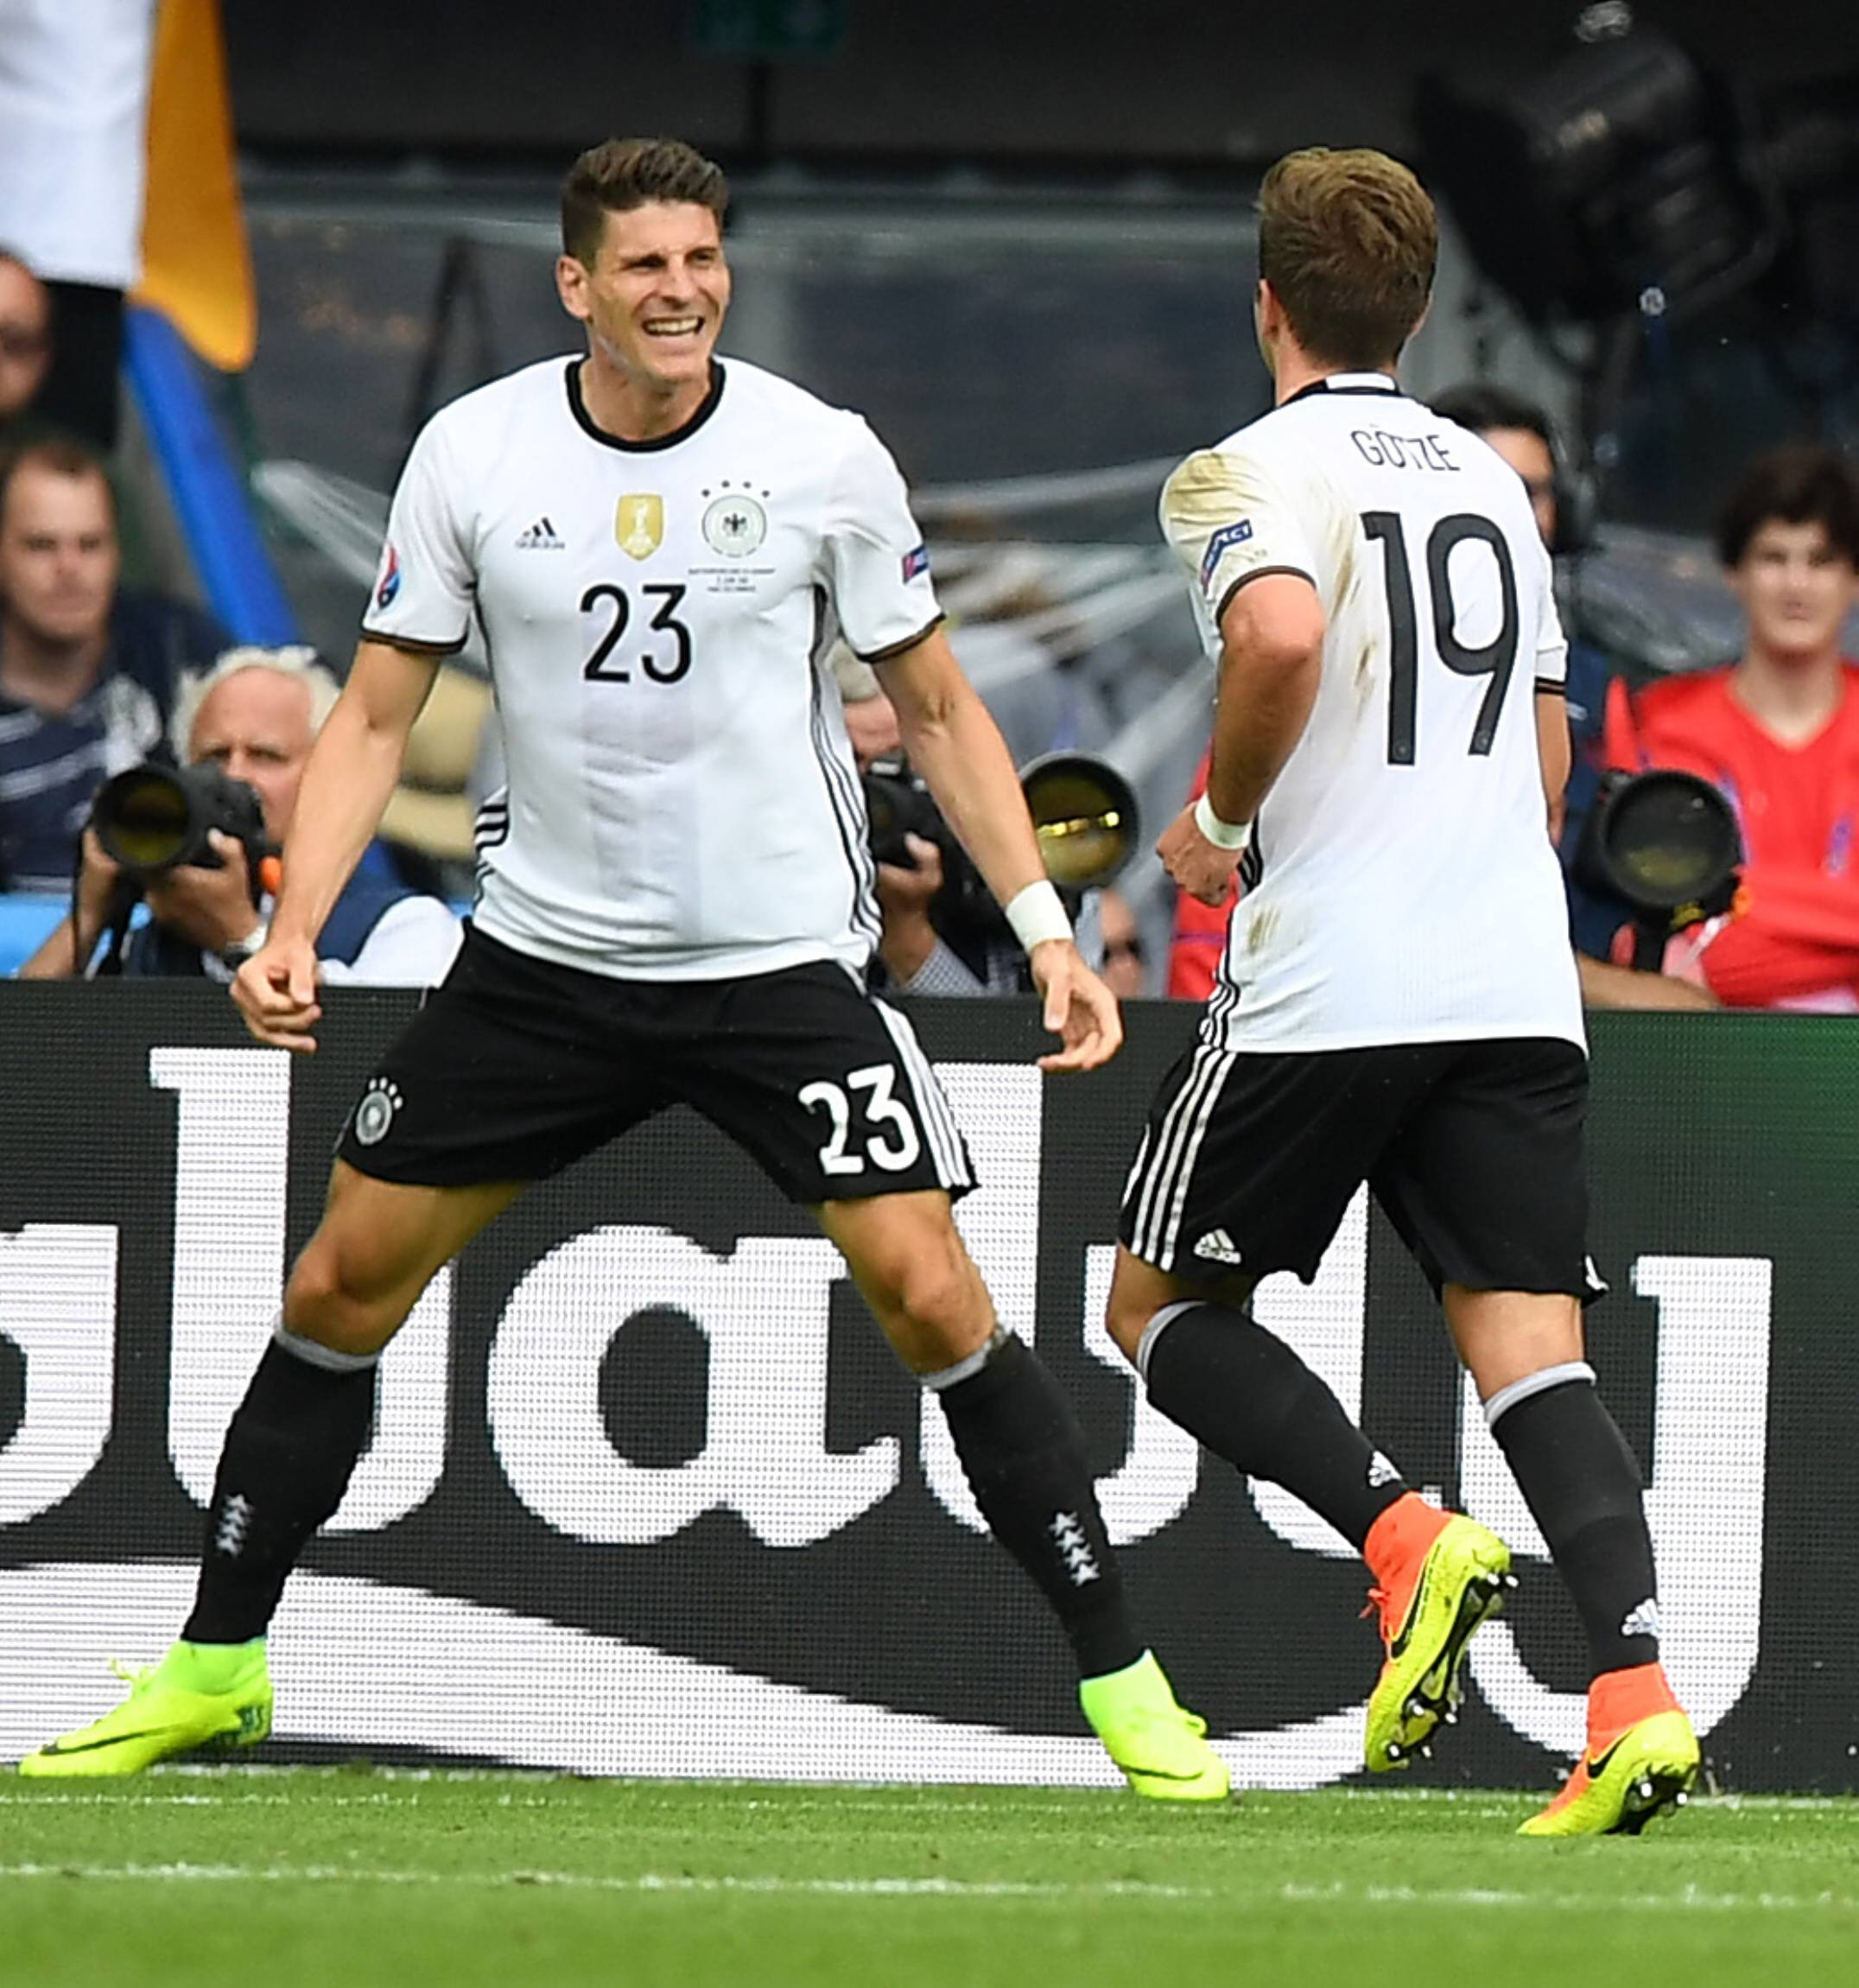 Mario Gomez(Deutschland), jubelt nach seinem Tor zum 0:1, rechts Mario Götze (Deutschland), Nordirland-Deutschland Northern Ireland Final Tournament, Group C , Vorrunde, Gruppe C UEFA EURO EM Europameisterschaft Fussball 2016 France, EM, Europameisterschaft Fussball, Fussball, Fußball, Nationalteam, Nationalmannschaft, men, Maenner, soccer, result Paris, 21.6.2016Mario Gomez Germany cheering After his goal to 0 1 right Mario Götze Germany Northern Ireland Germany Northern Ireland Final Tournament Group C Fight Group C UEFA Euro euro European Championship Football 2016 France euro European Championship Football Football Football National team national team Men Men Soccer Result Paris 21 6 2016